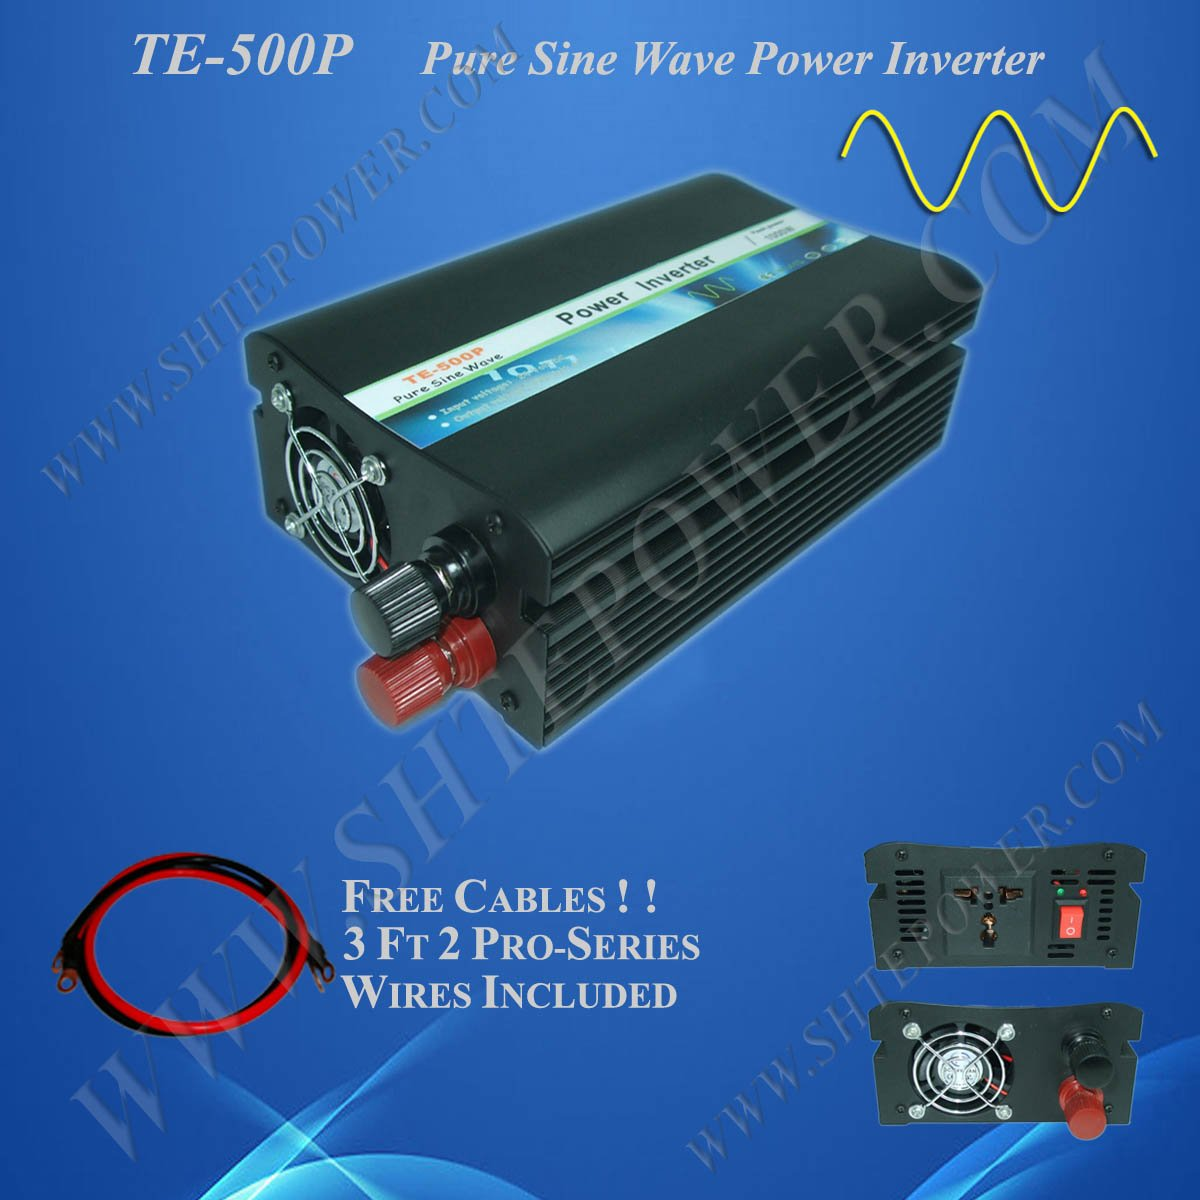 цена на Off Grid Solar Power Inverter, 500w 24vdc to 120vac inverter, Pure Sine Wave Power Invertor